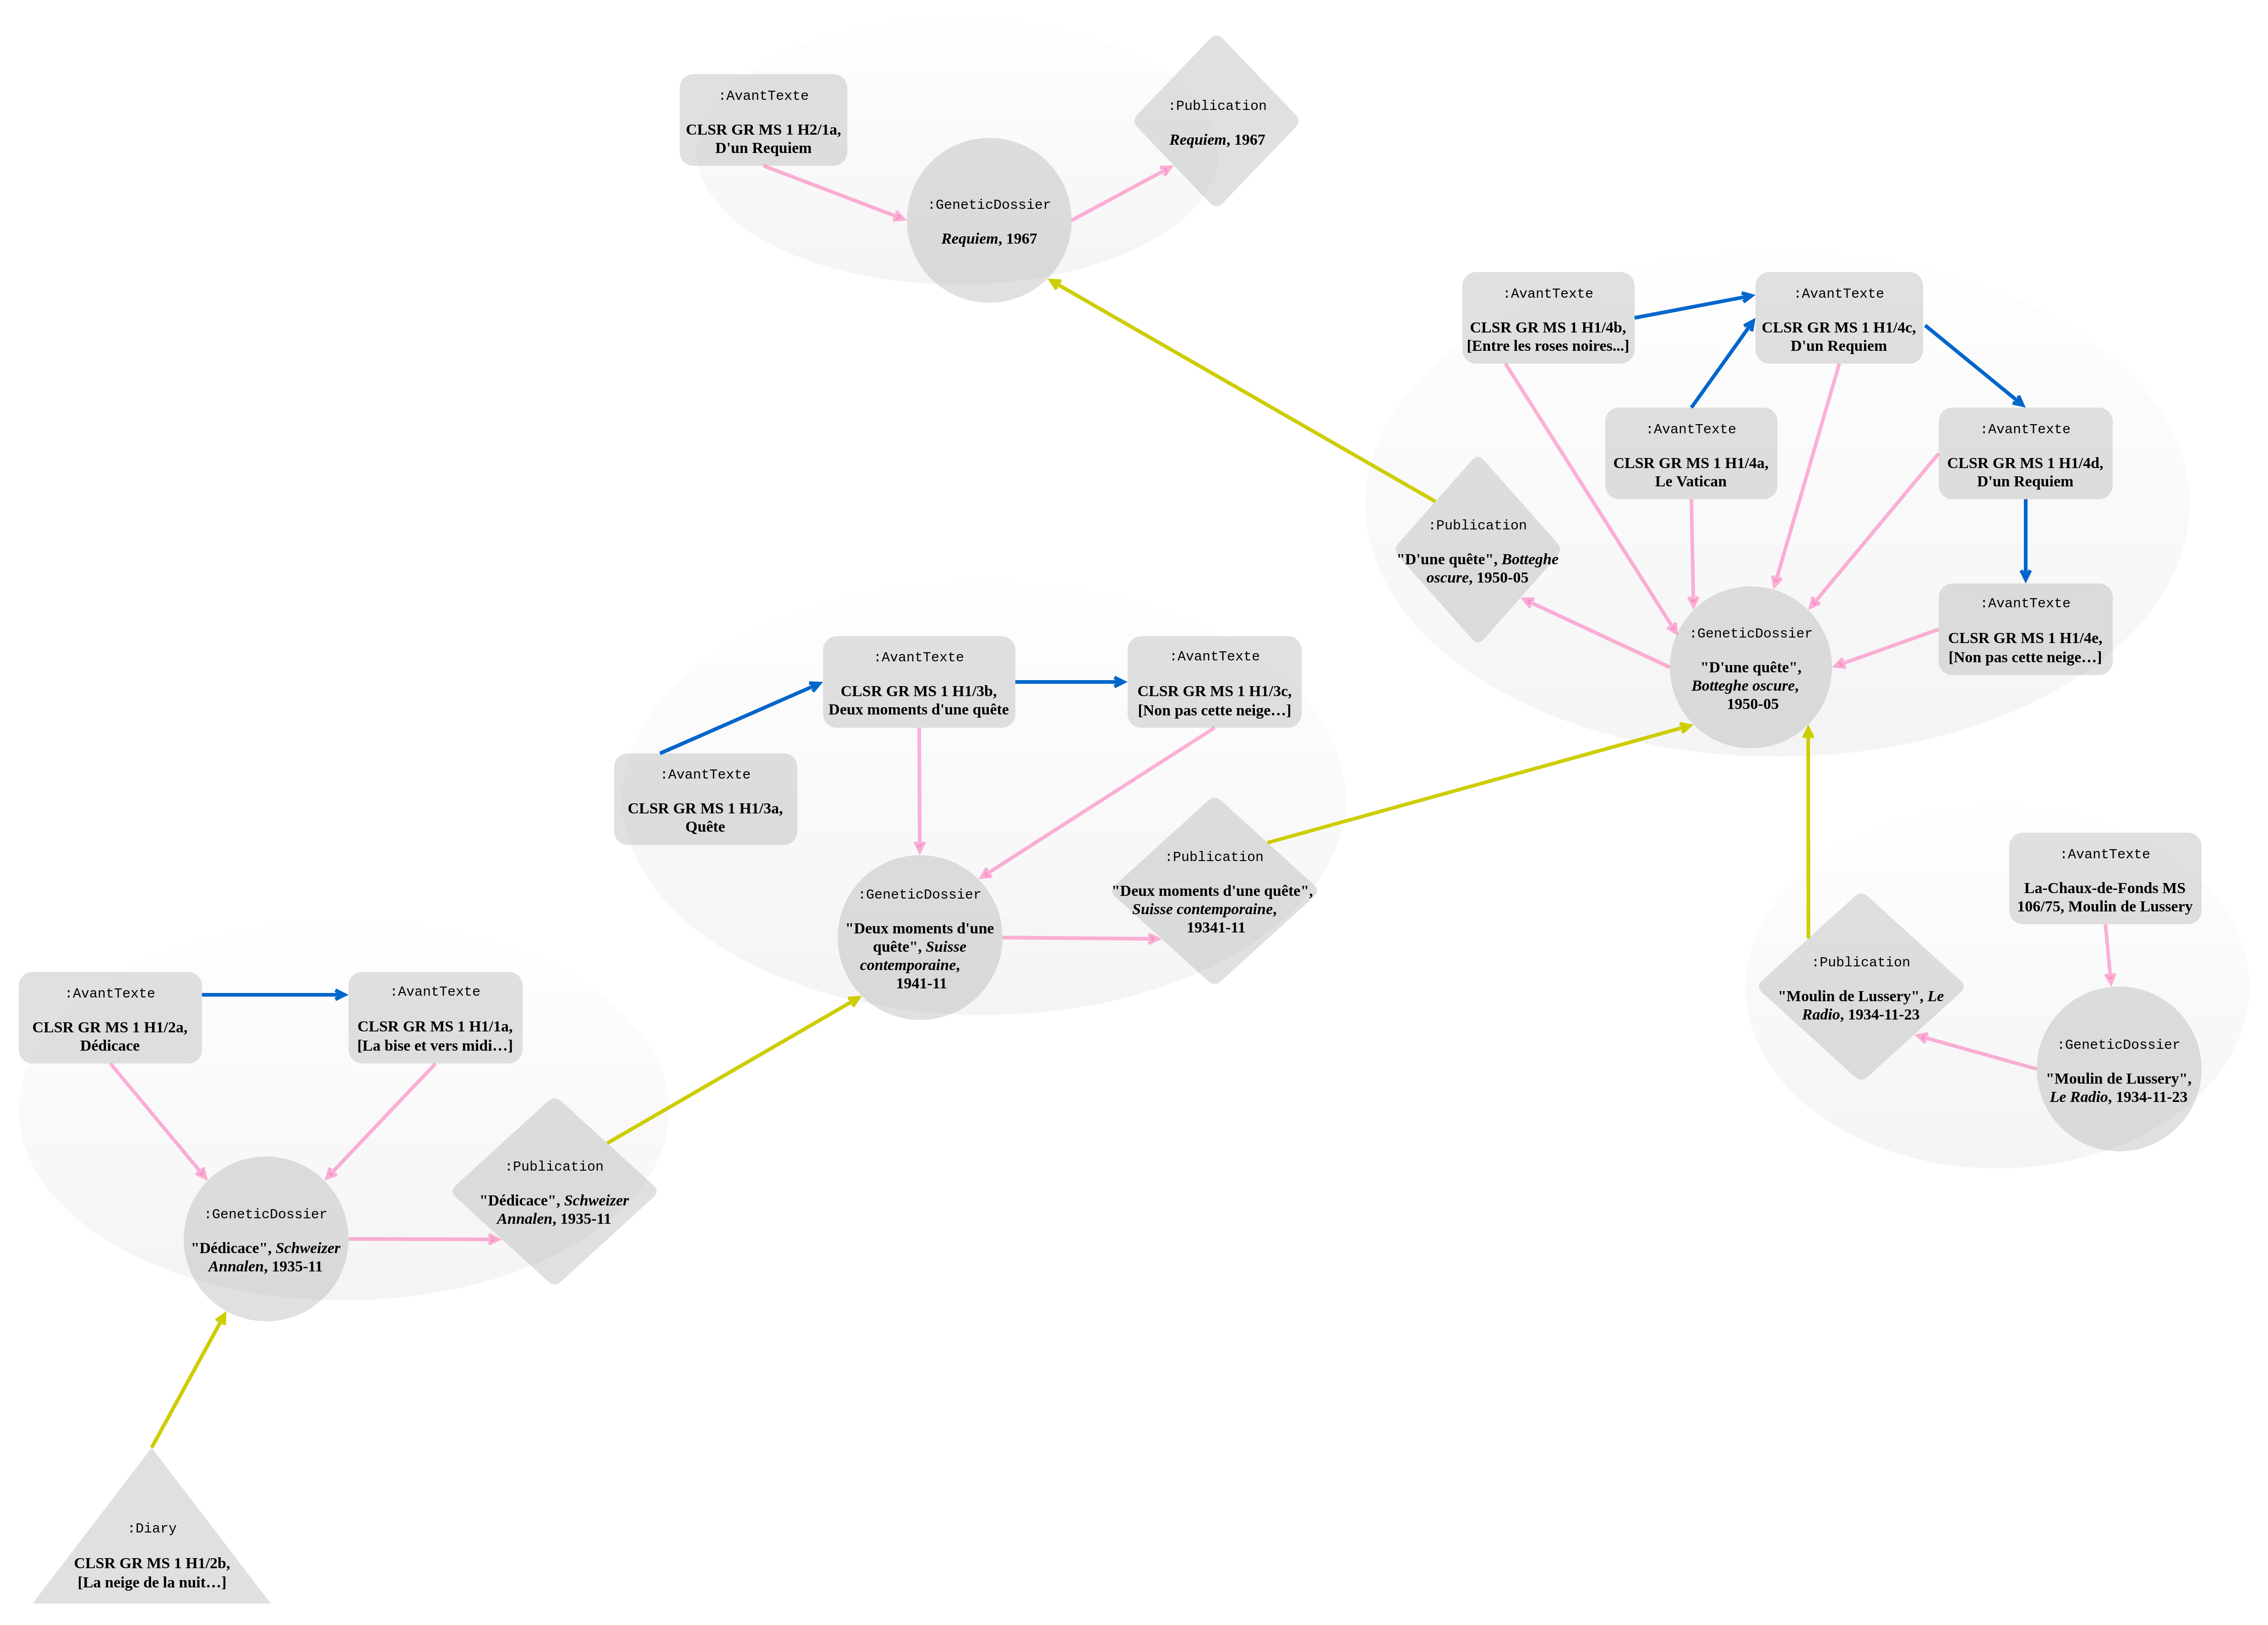 Genetic network of Requiem (part 1). Links to and from the genetic dossier are in pinkt; the property :avantTexteIsBeforeInAvantTexte in blue; sub-properties of :isReusedIn in yellow. Labels are sometimes omitted to avoid overcrowding the diagram.